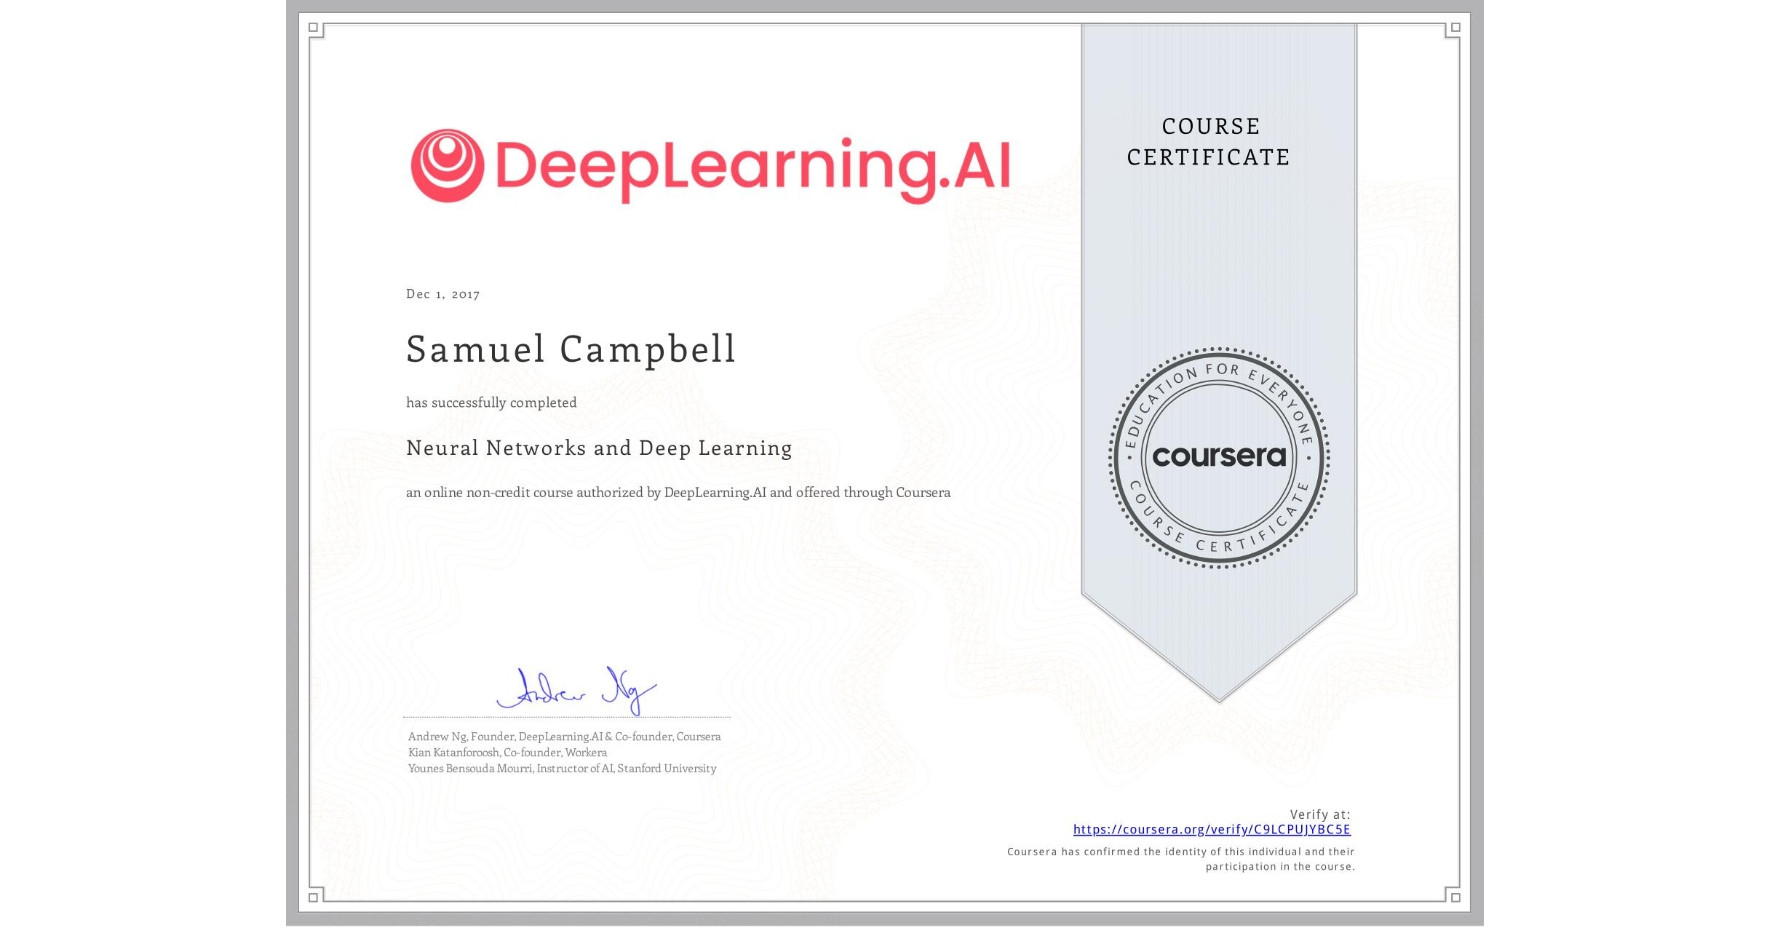 View certificate for Samuel Campbell , Neural Networks and Deep Learning, an online non-credit course authorized by DeepLearning.AI and offered through Coursera